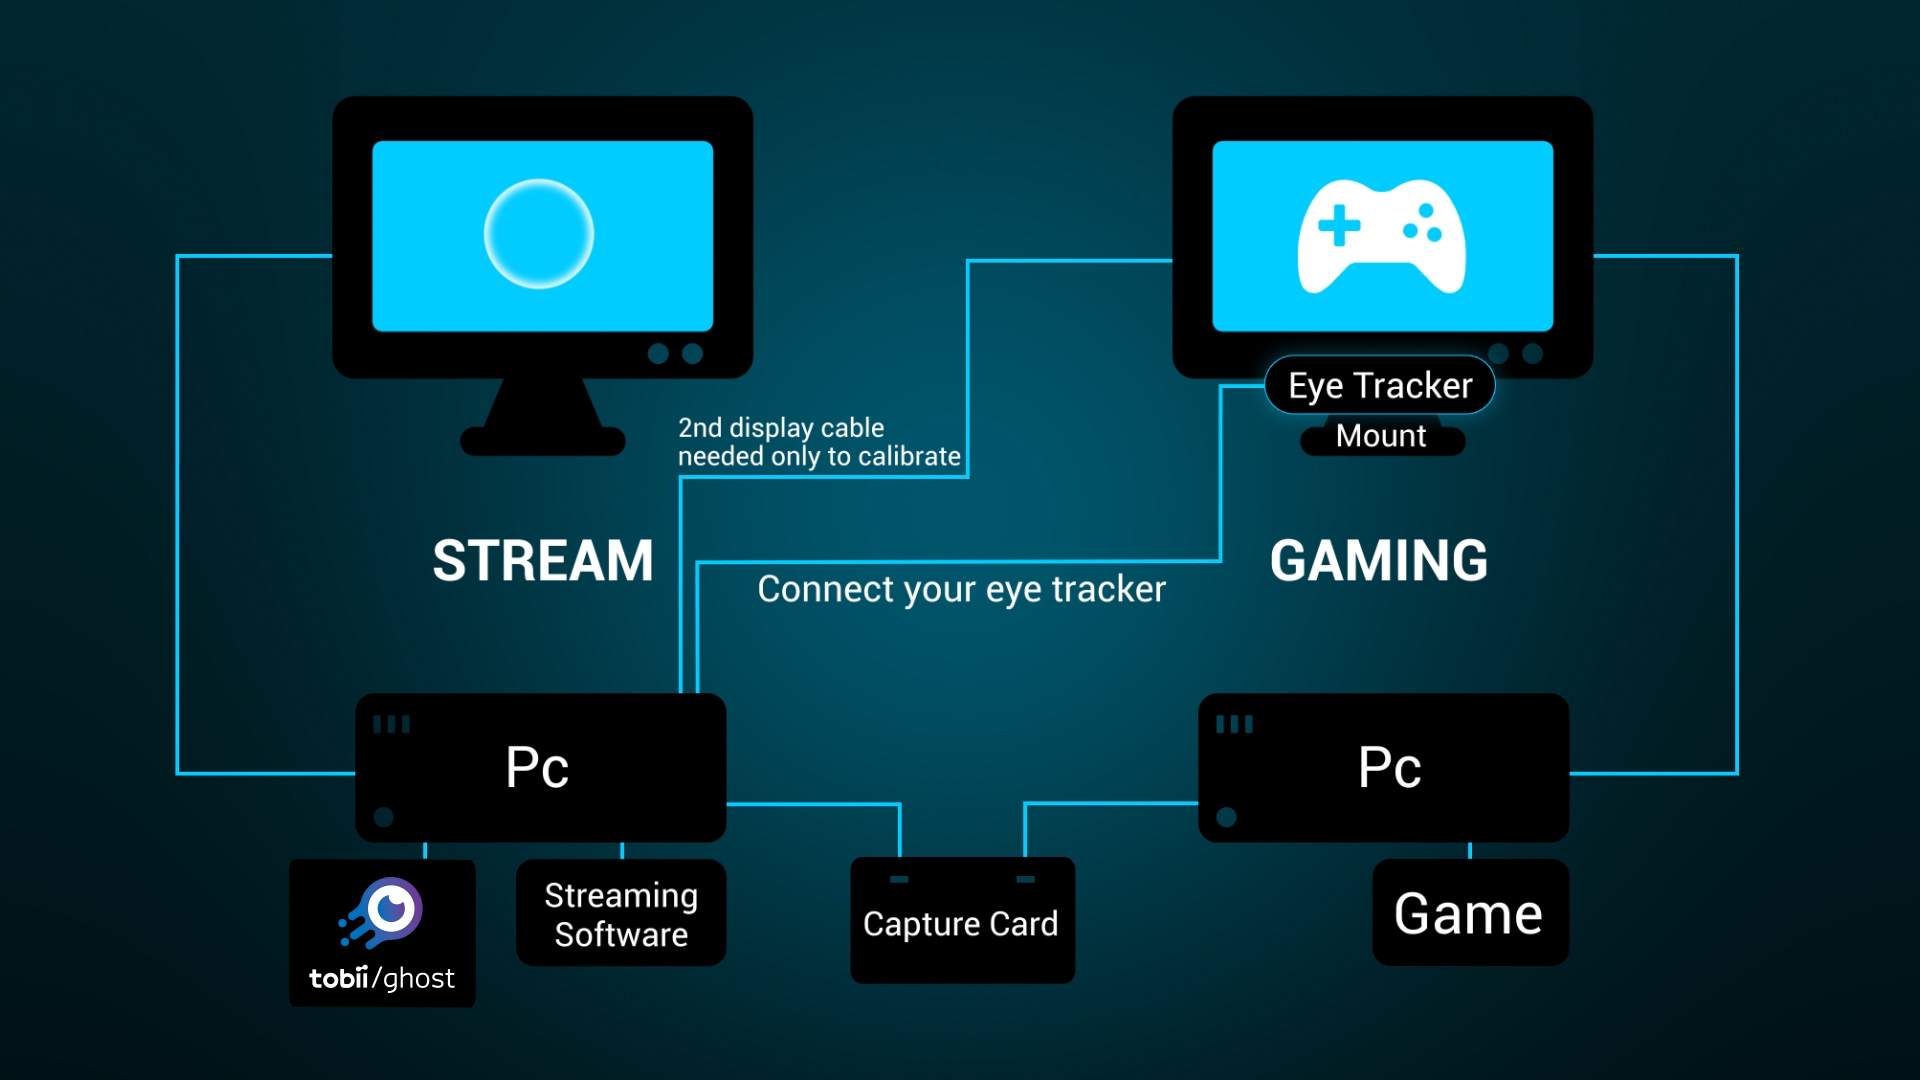 Optimised performance streaming with two computers